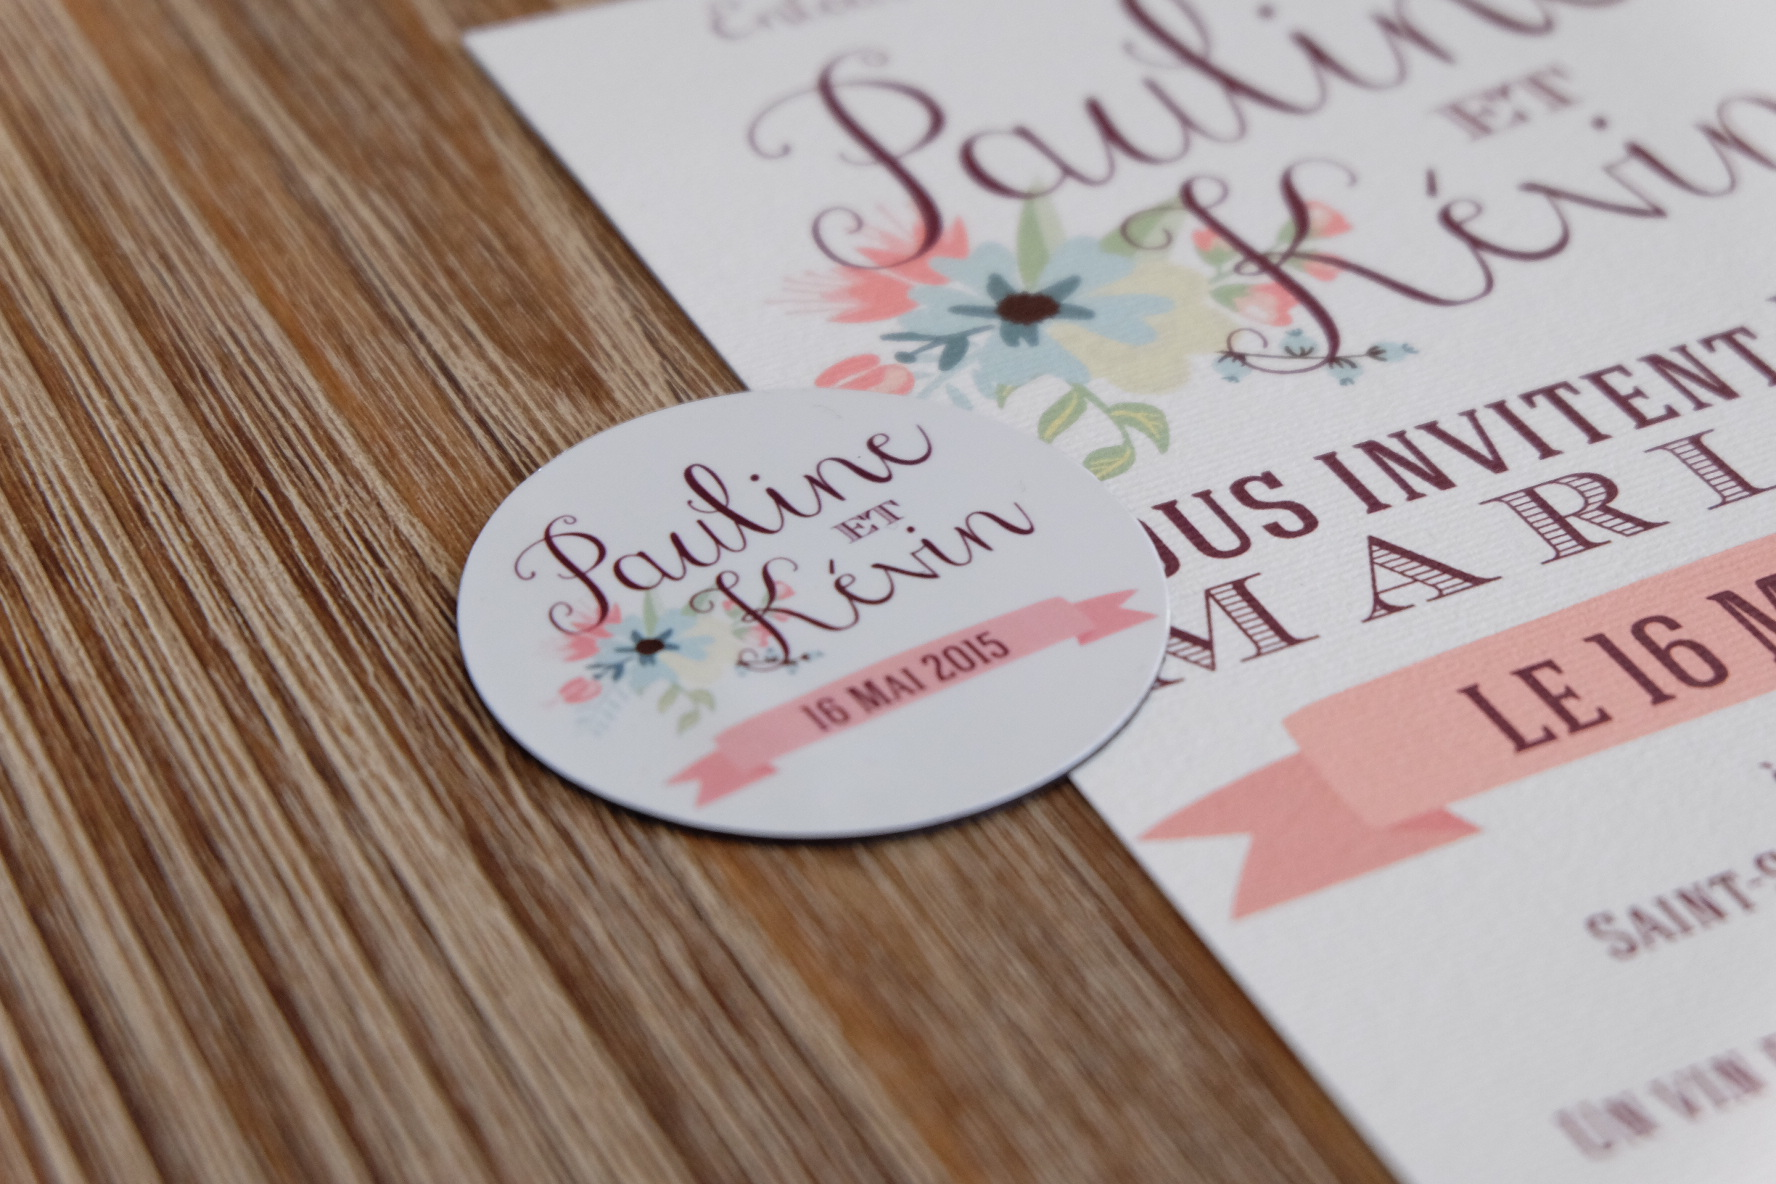 diy, idea, matrimonio, inivitati, invitazione creativa, magnete, calamita, save the date